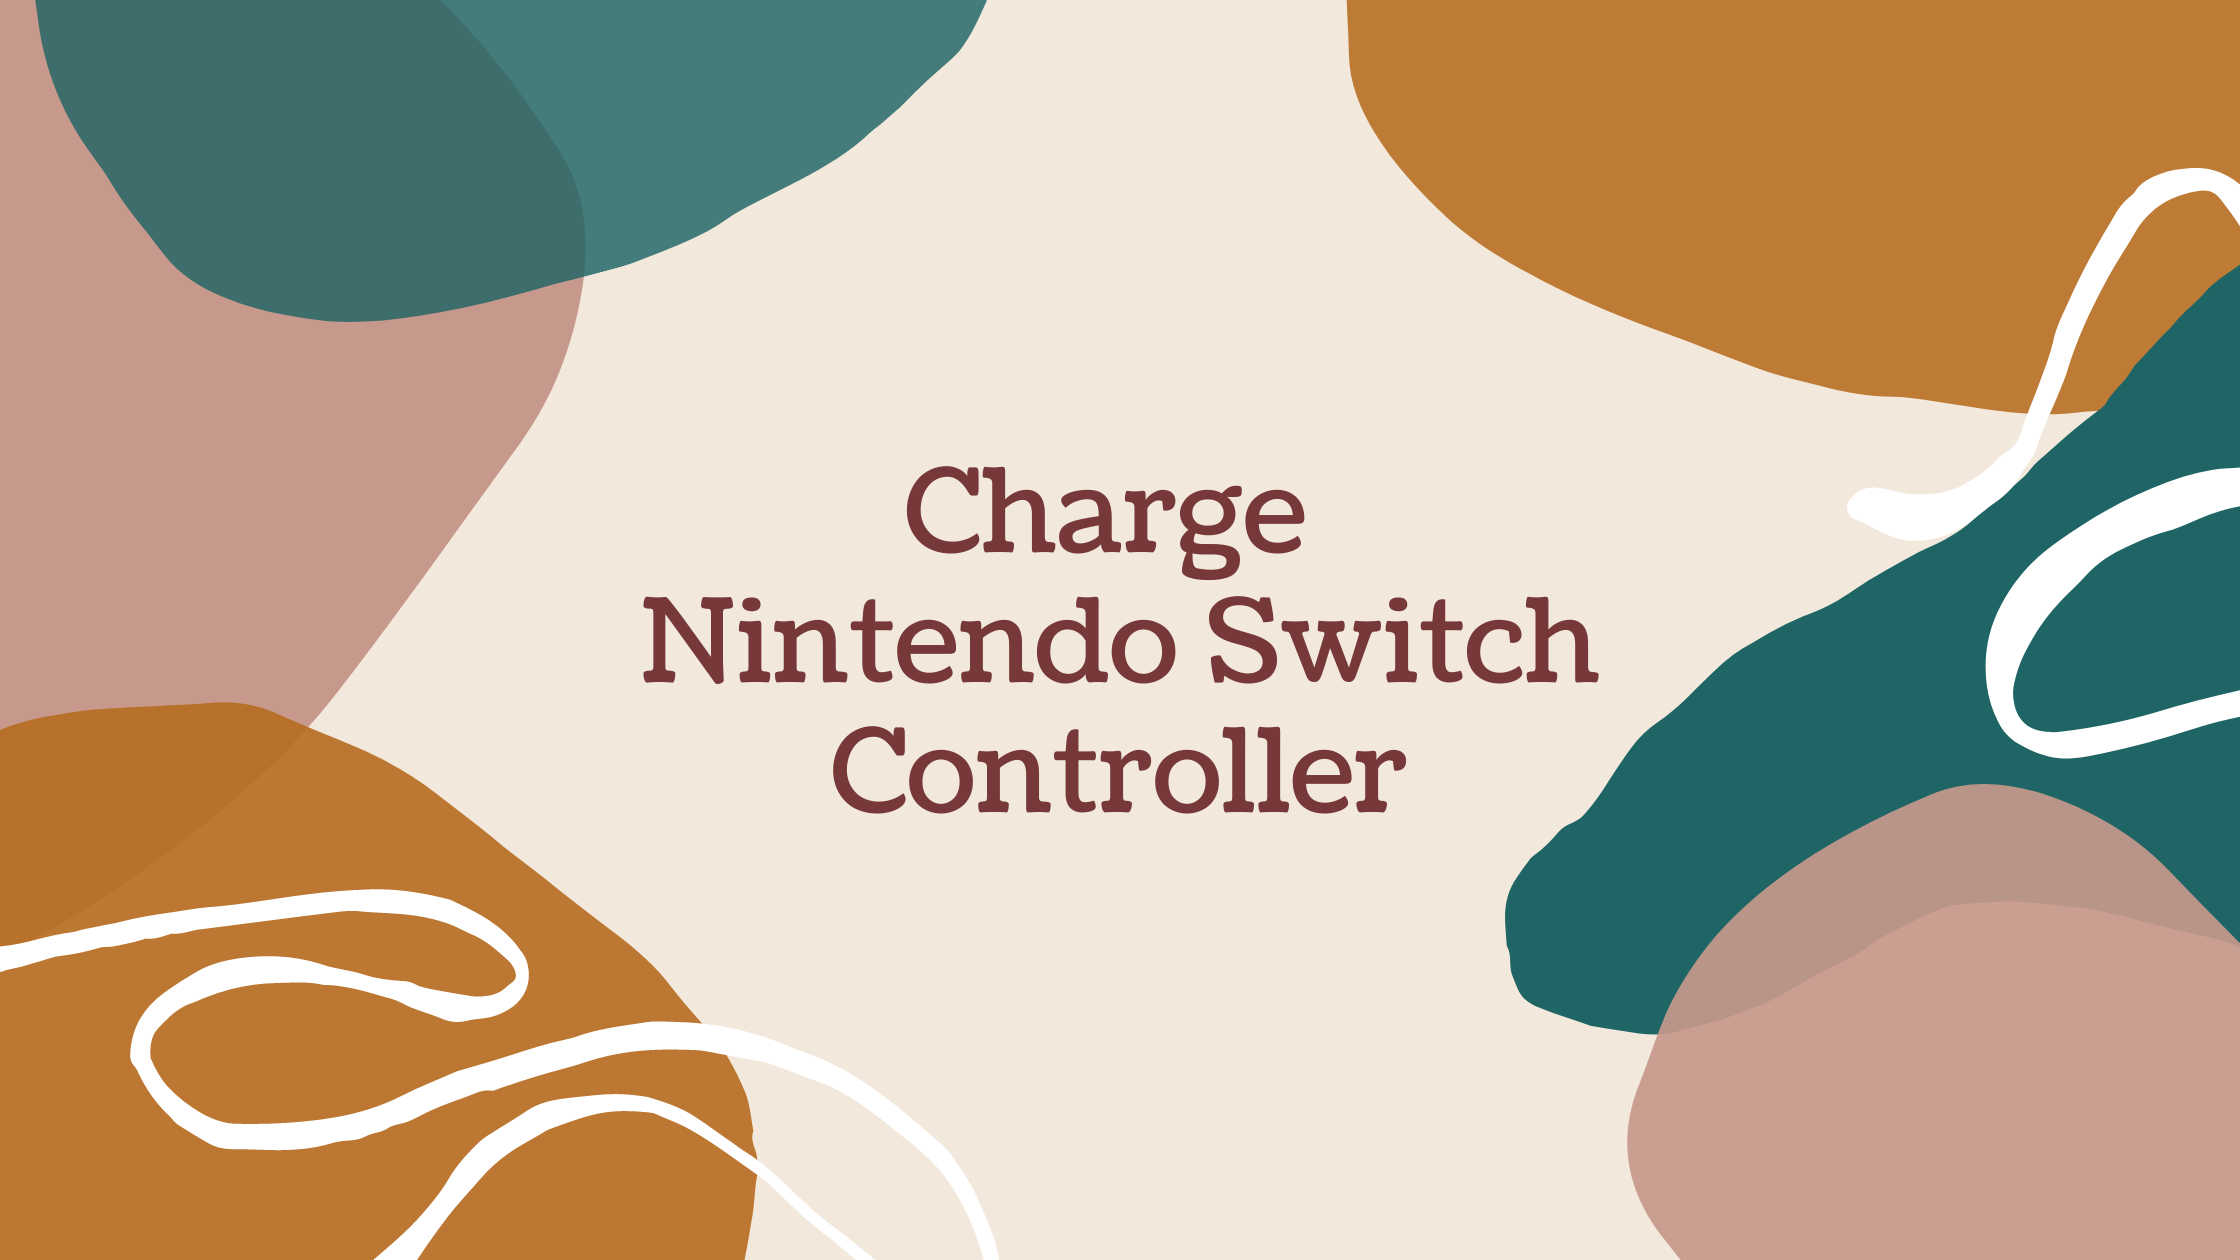 How to Charge the Nintendo Switch Controller?